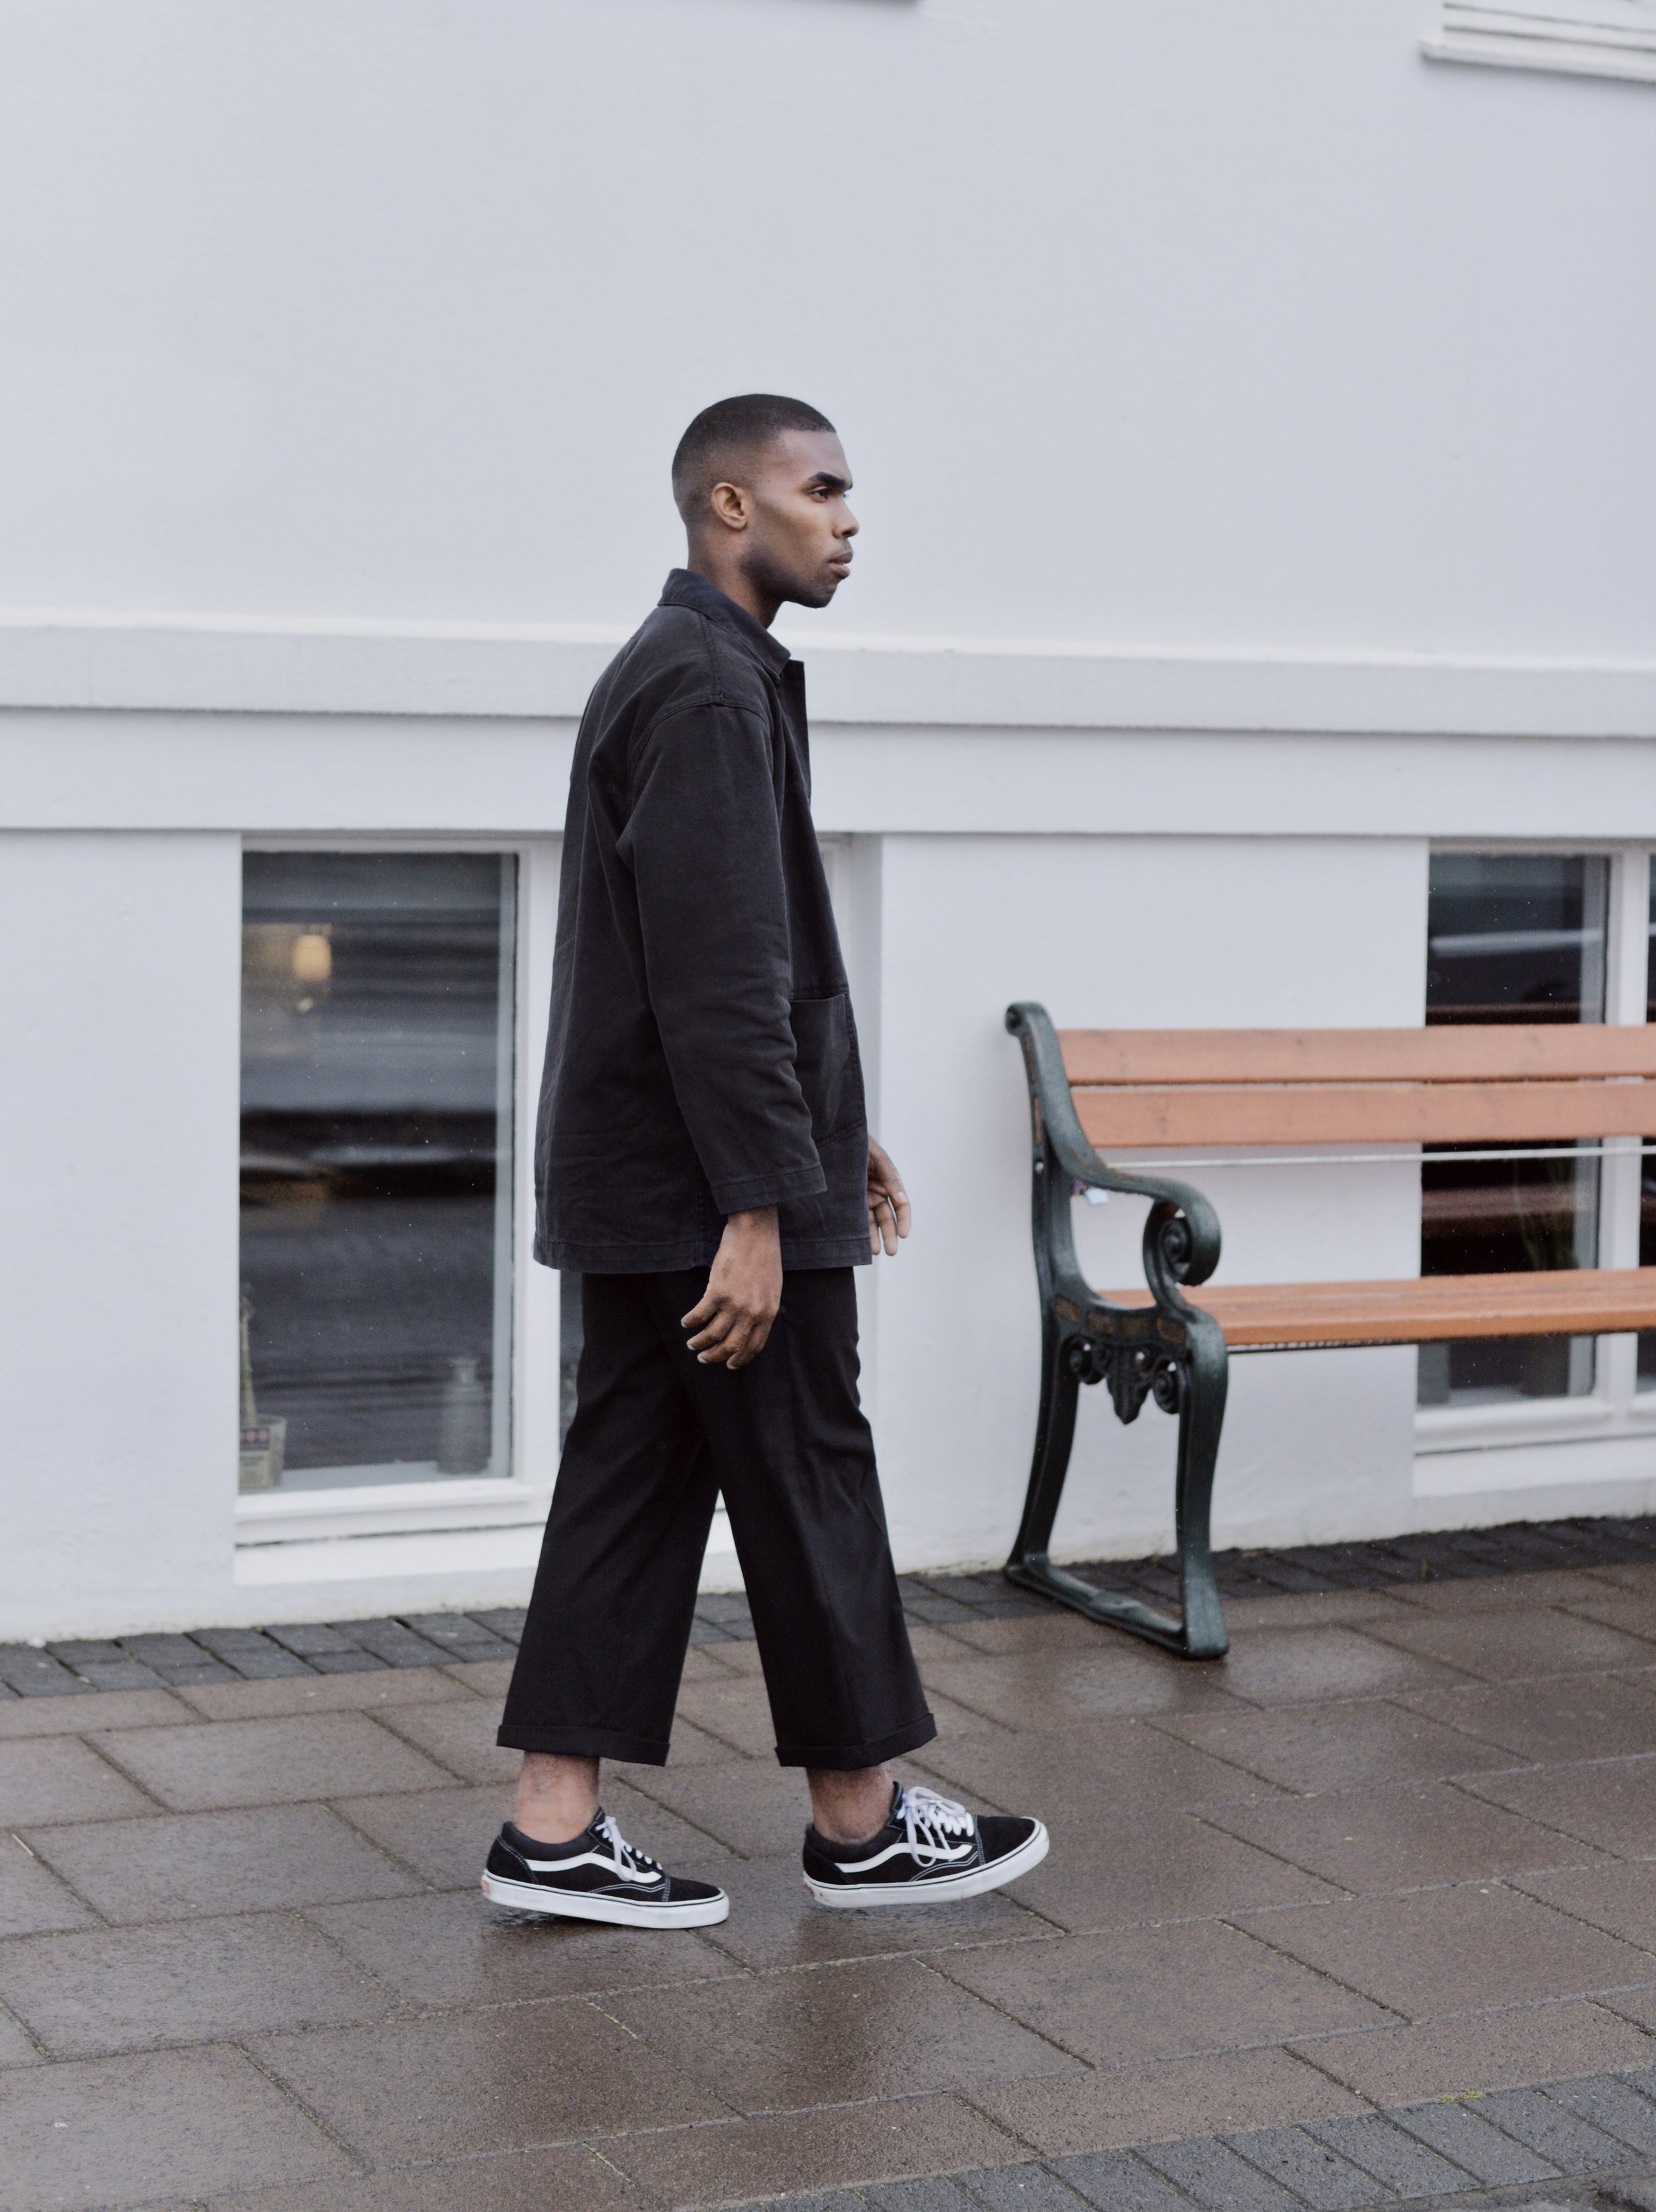 The-Look-Principle-Oversized-Worker-Style-In-Reykjavik-2.jpg